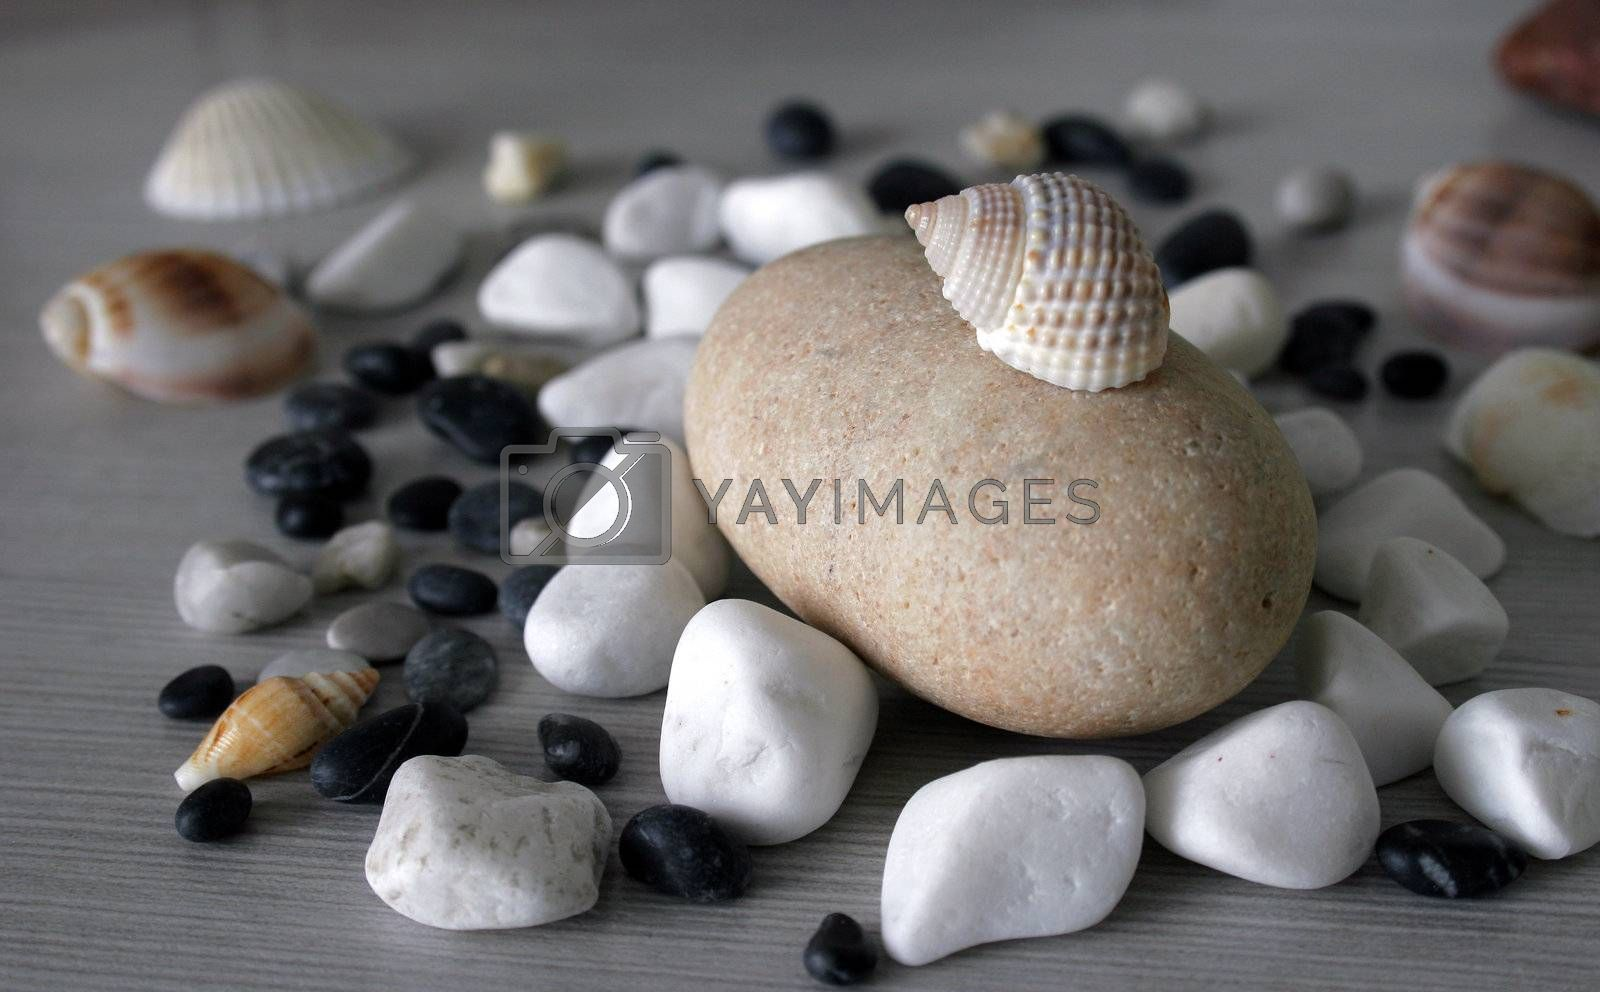 Sea symbols and creative forms and elements